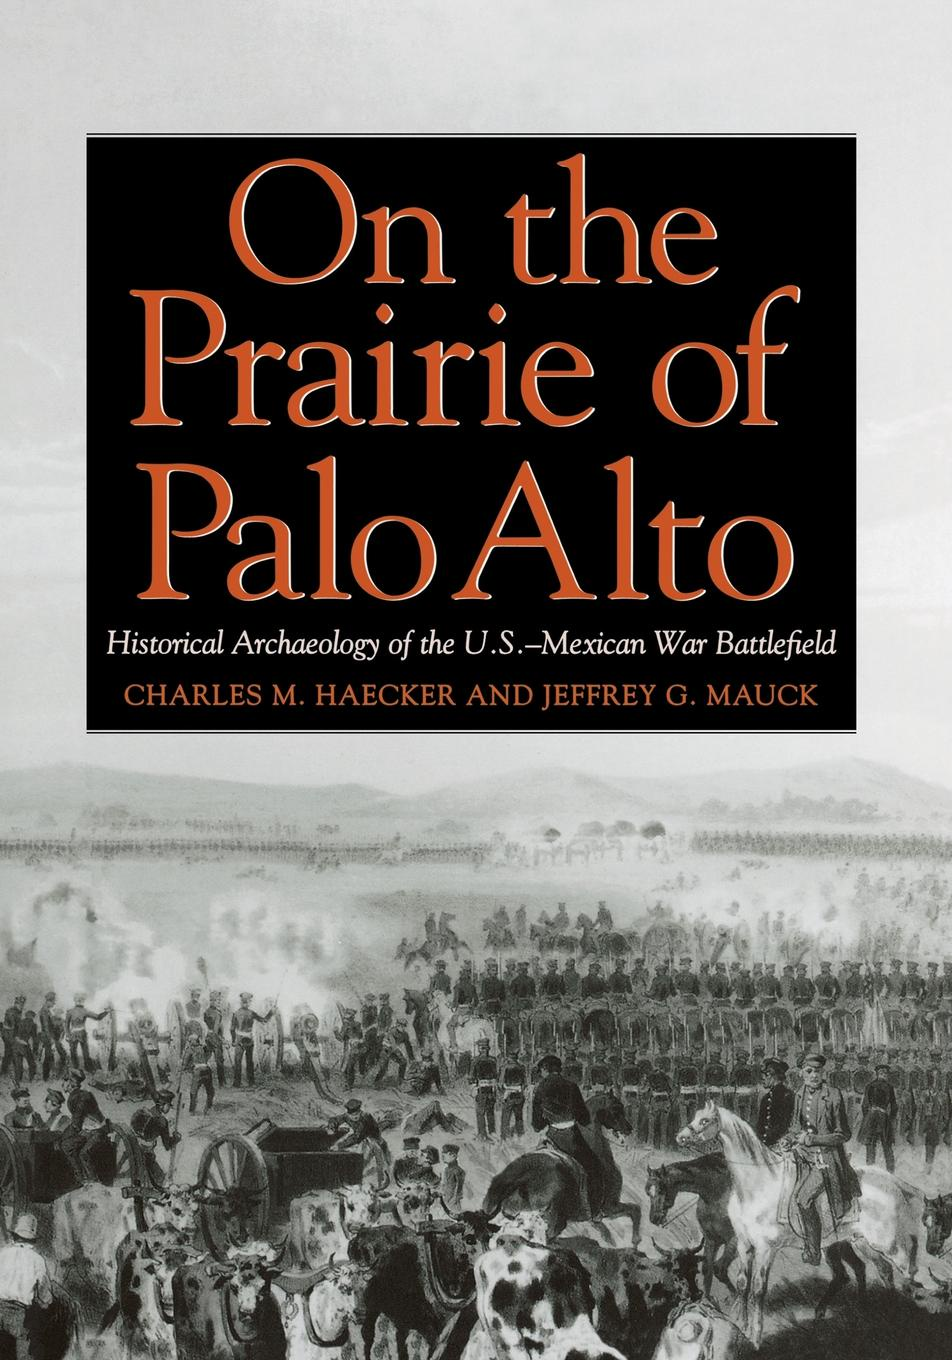 Charles M. Haecker, Jeffrey G. Mauck, And Mauck Haecker and On the Prairie of Palo Alto